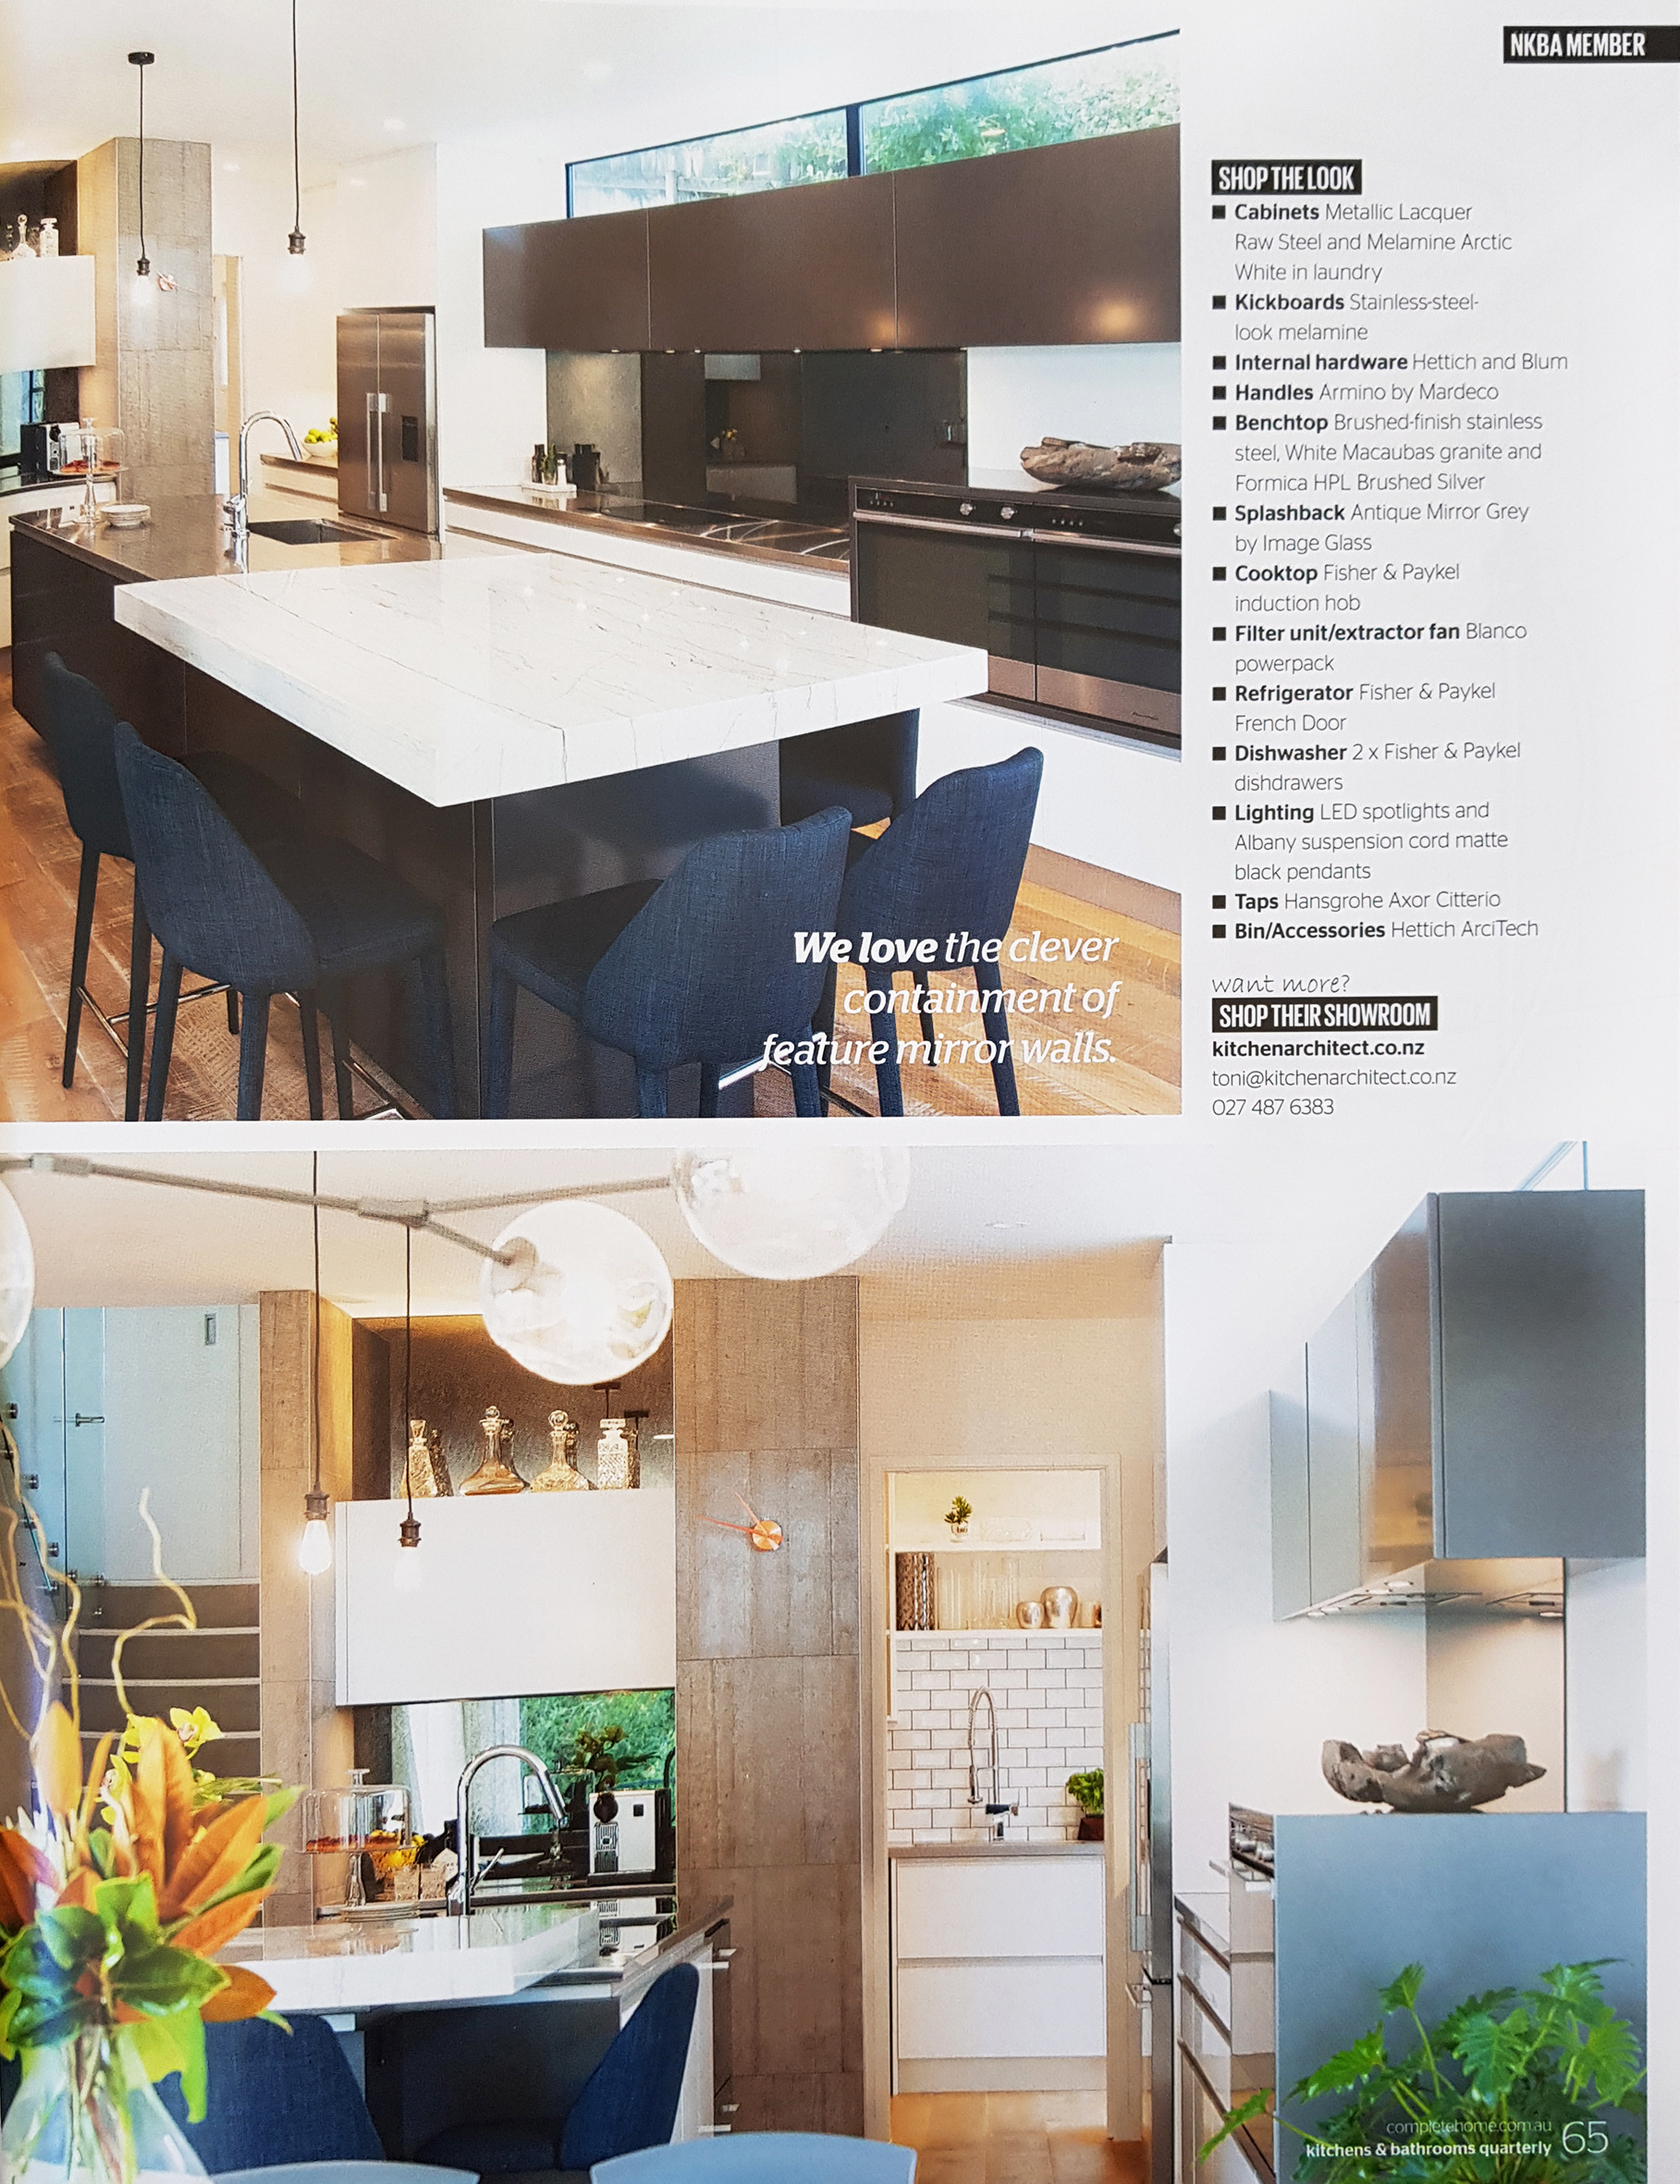 Kirsten Ford Design Magazine Article 2.jpg